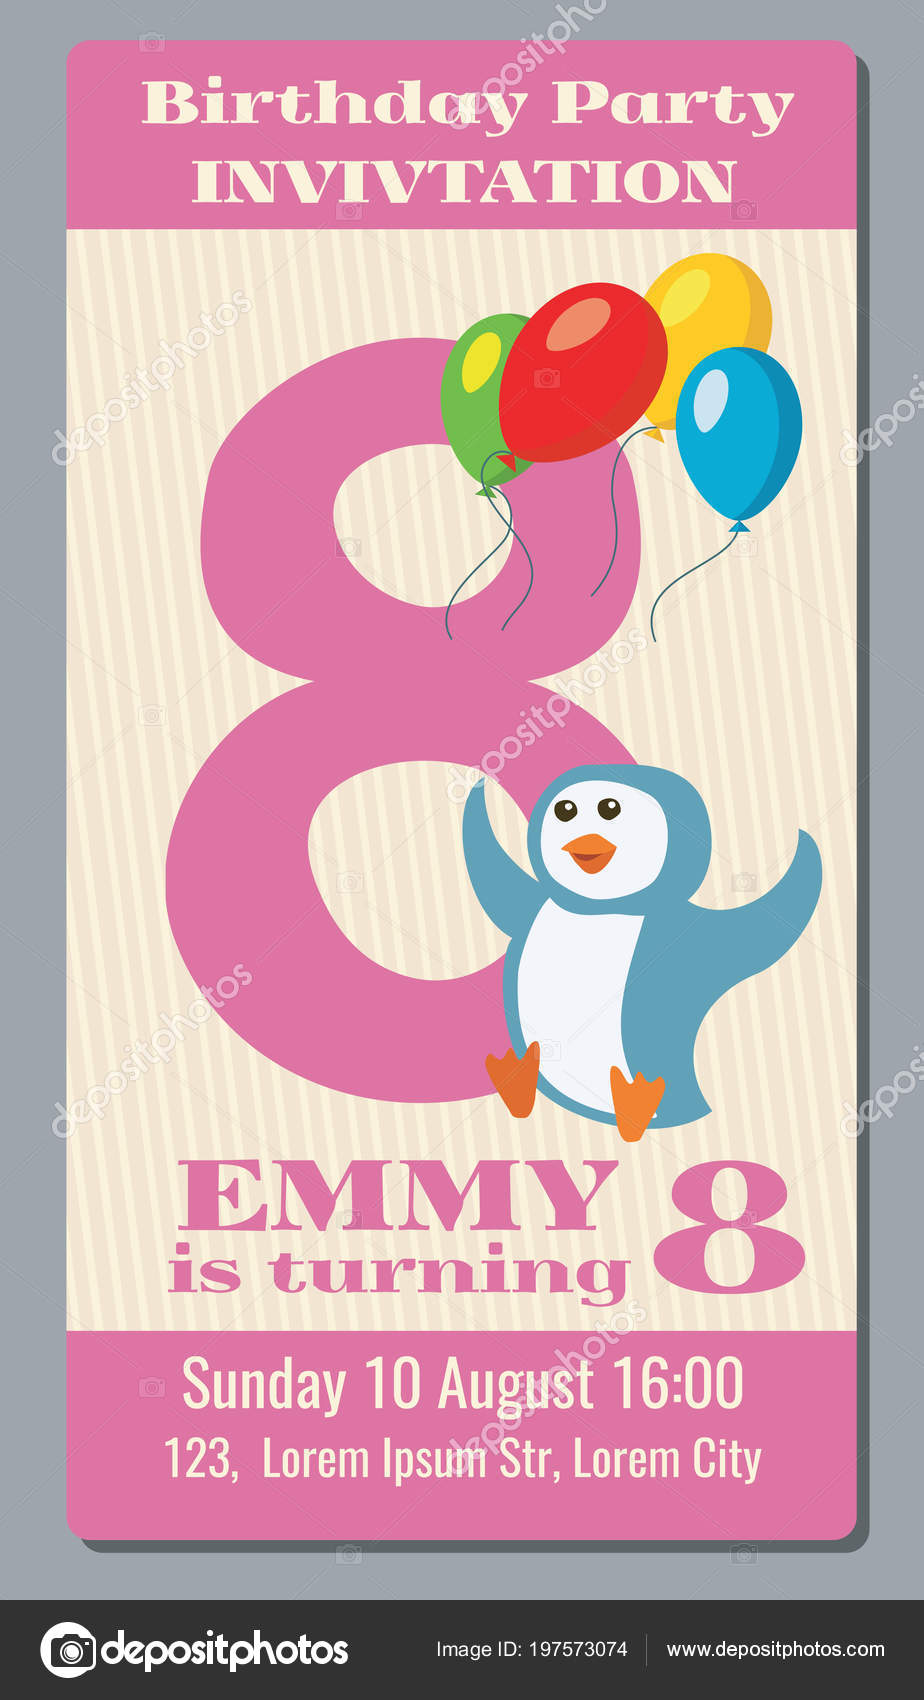 Birthday Party Invitation Pass Vector Ticket With Funny Penguin For Kids 8 Years Old Event Character Illustration By